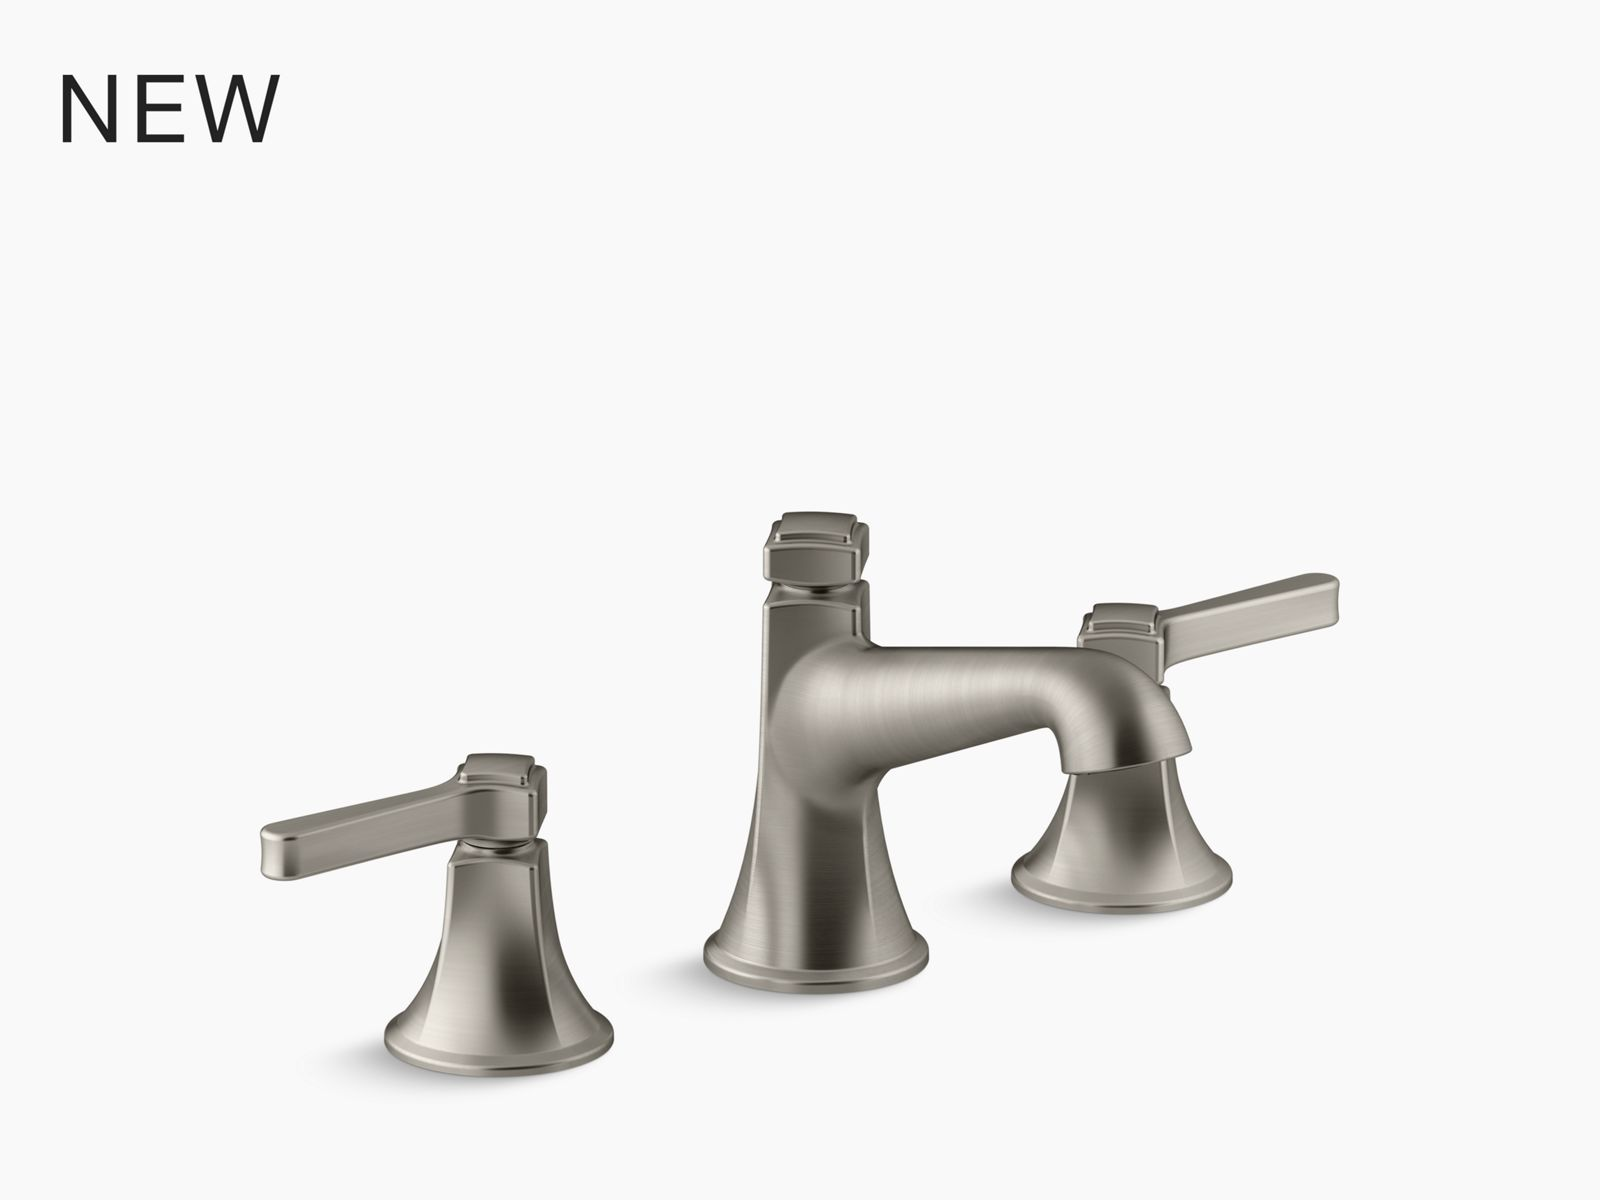 motif pull down kitchen faucet with soap lotion dispenser